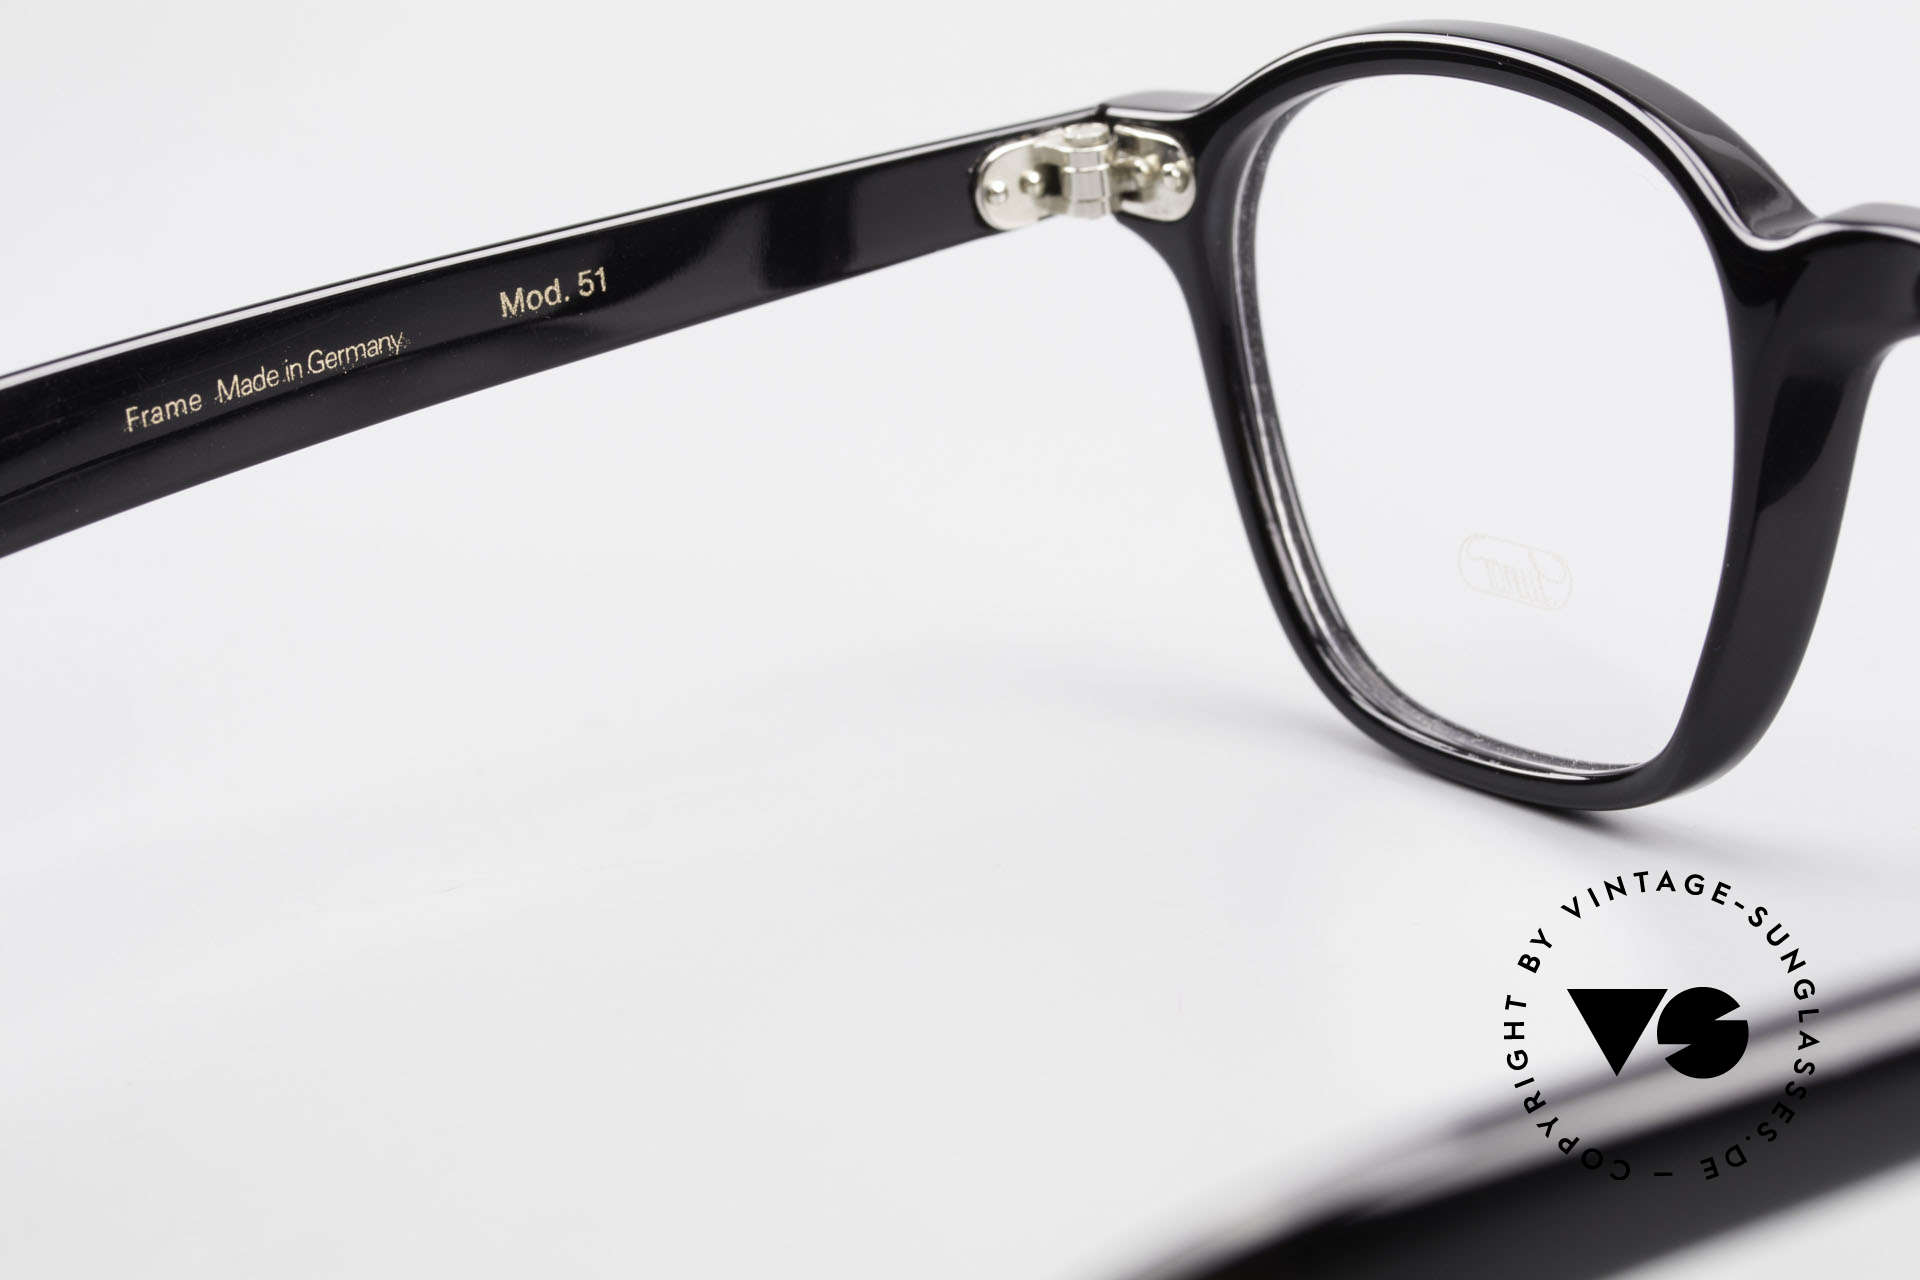 Lunor A51 James Dean Johnny Depp Specs, Size: small, Made for Men